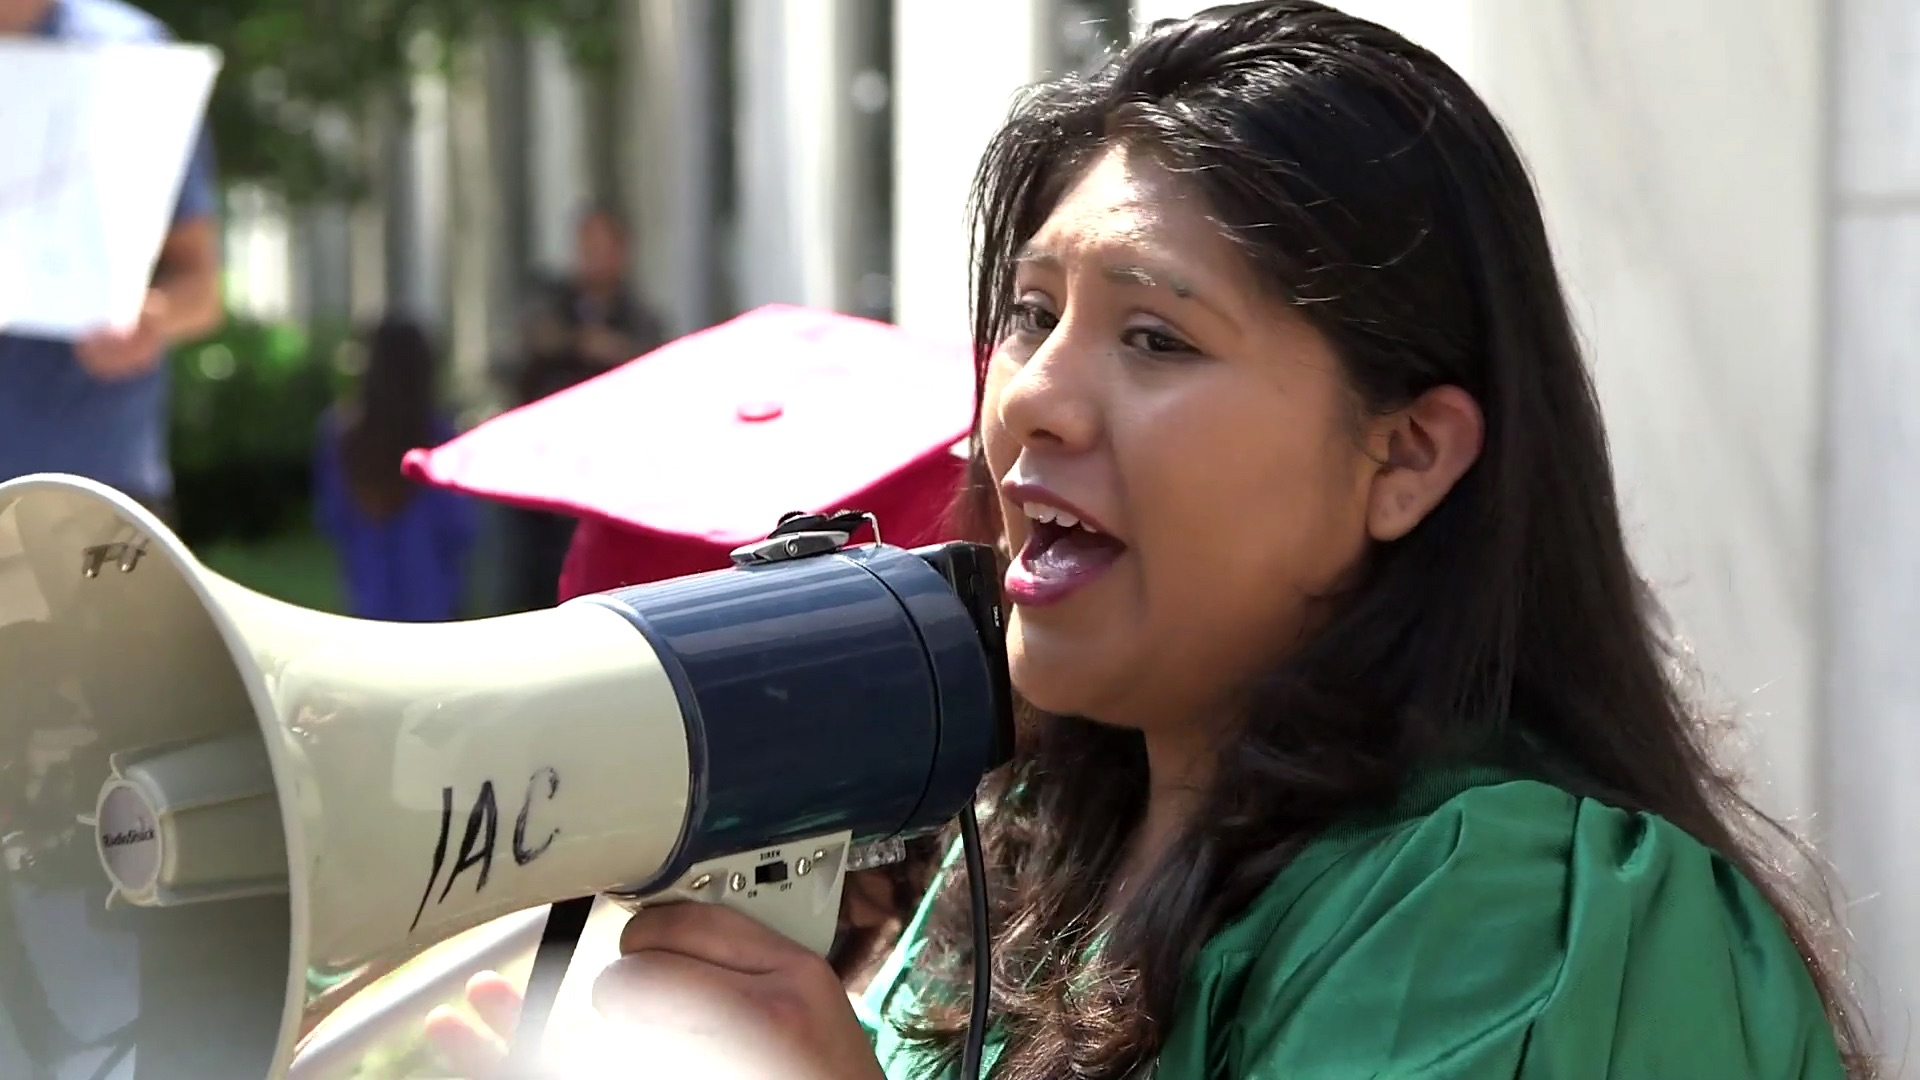 Georgia Banned Them From Public Universities, But These Undocumented Students Aren't Giving Up